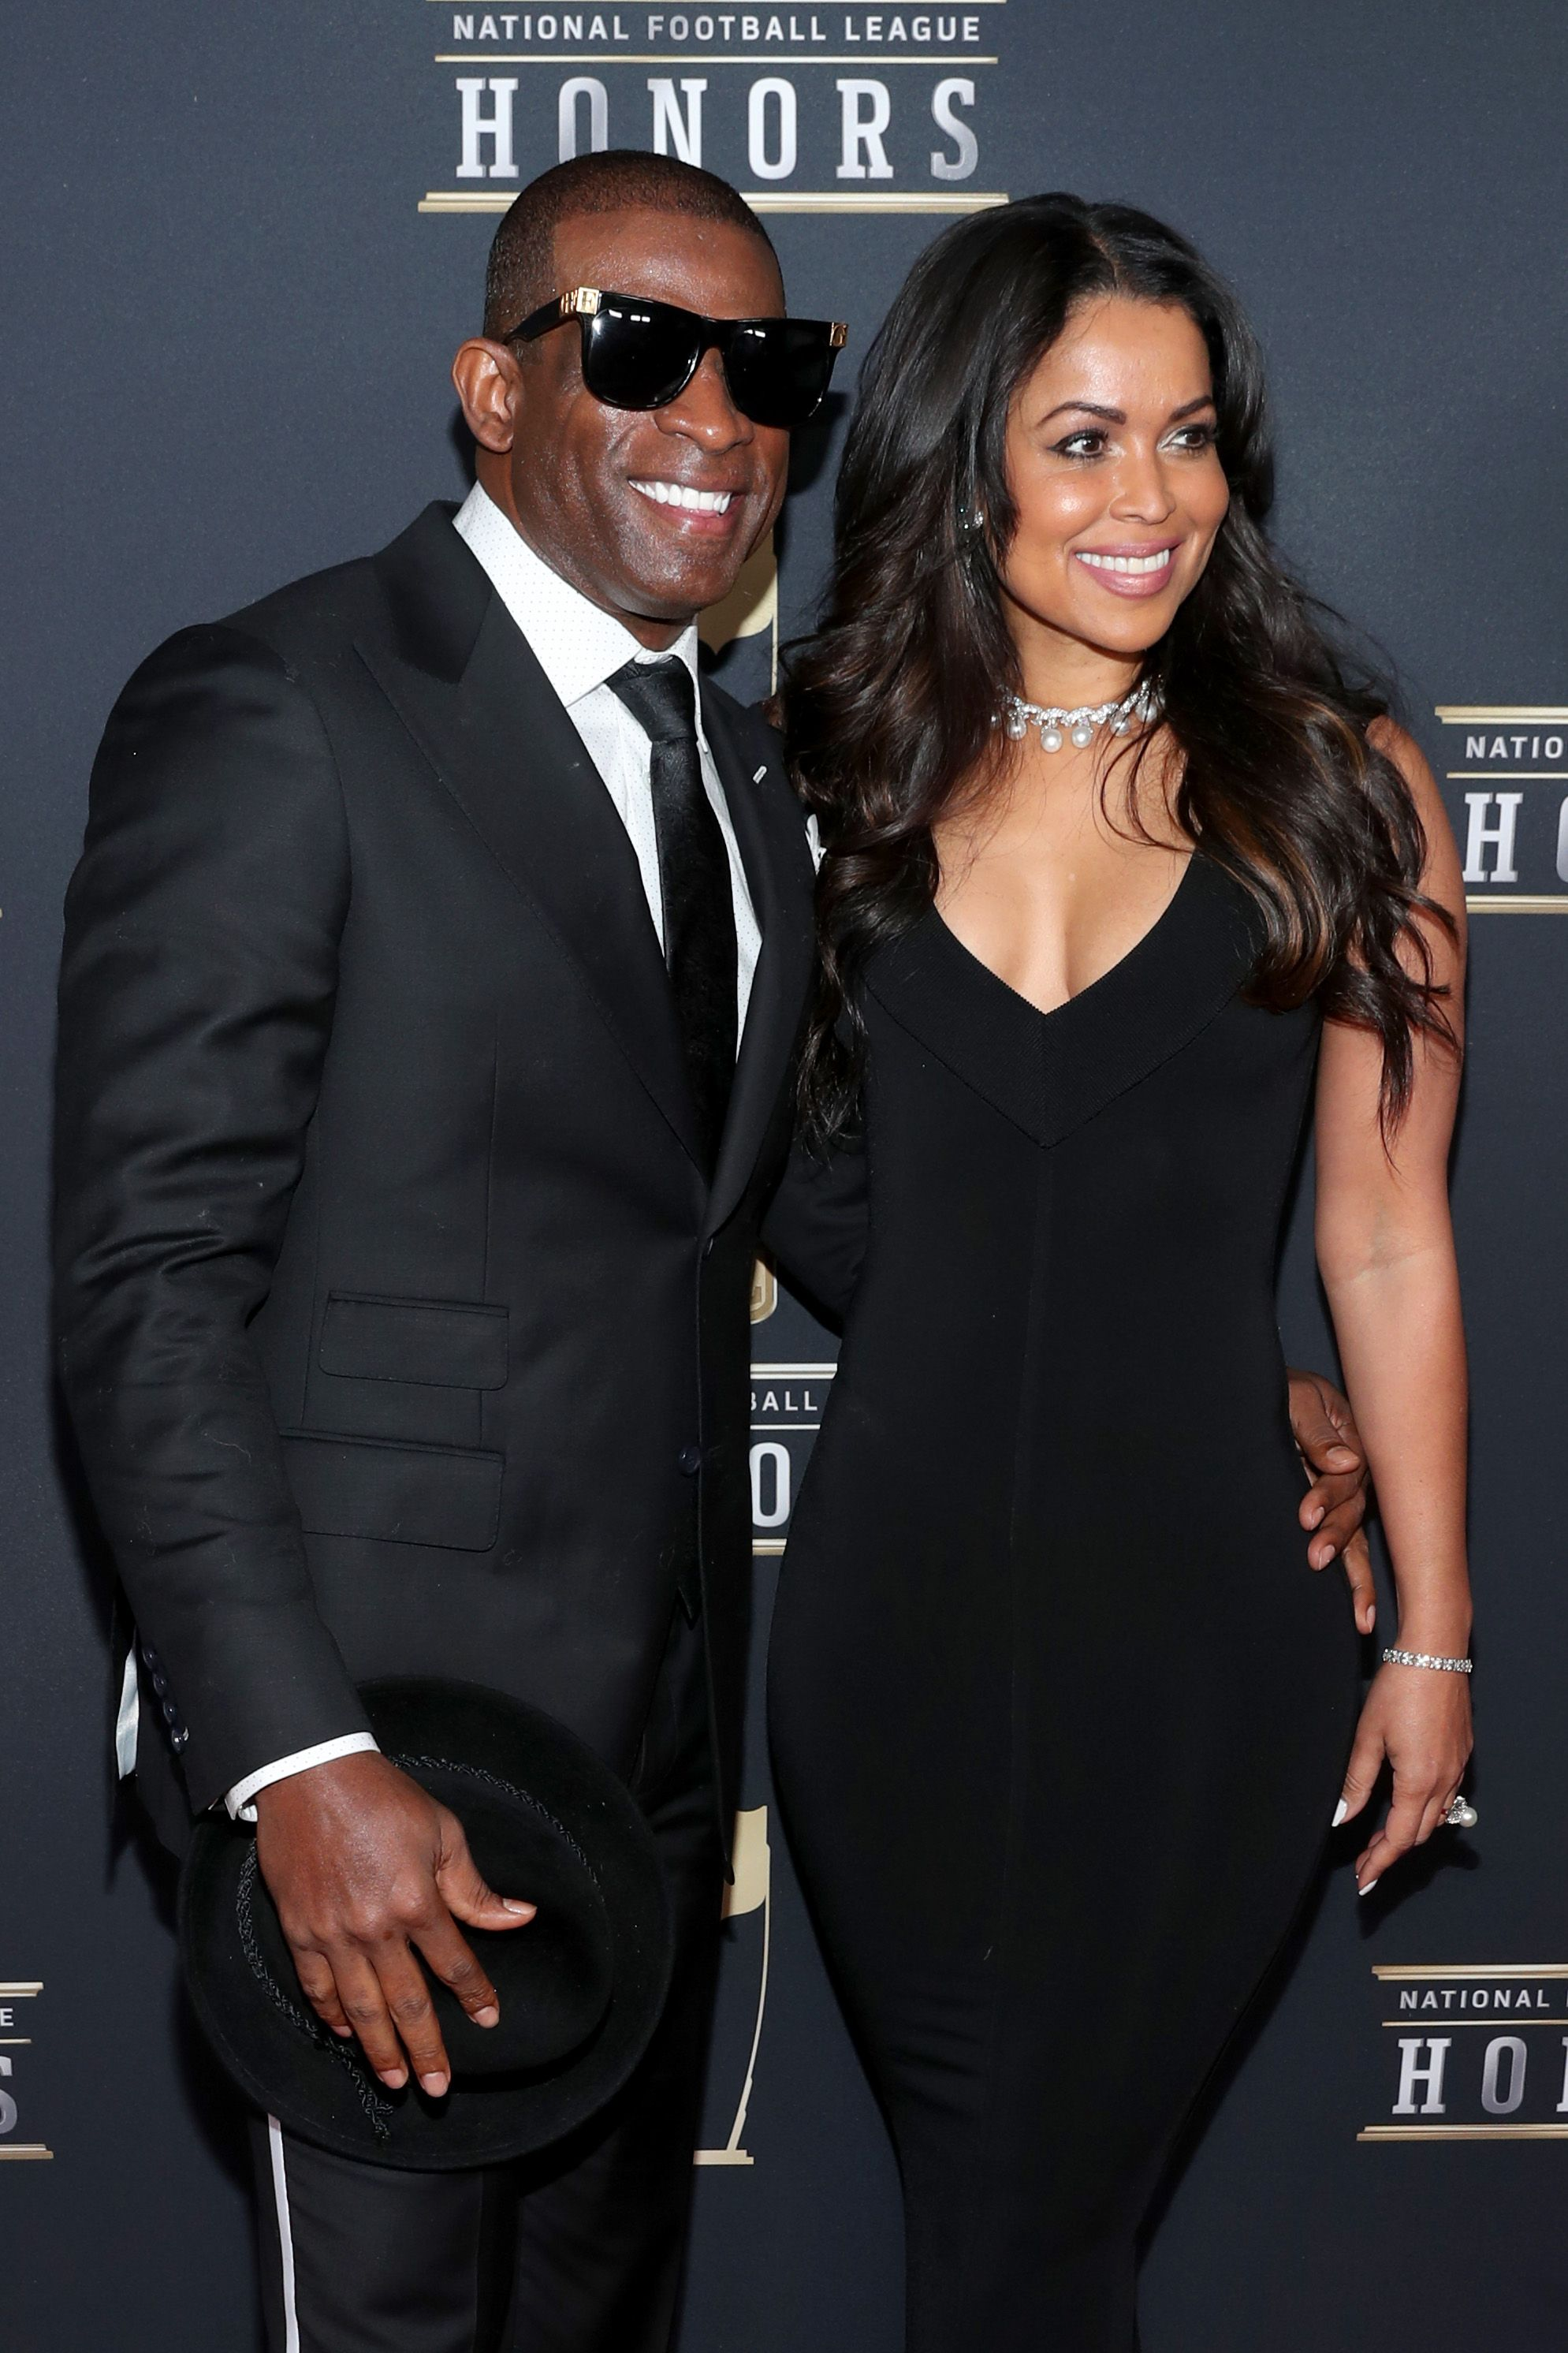 Deion Sanders and Tracey Edmonds attends the NFL Honors at University of Minnesota on February 3, 2018 in Minneapolis, Minnesota. | Photo: Getty Images